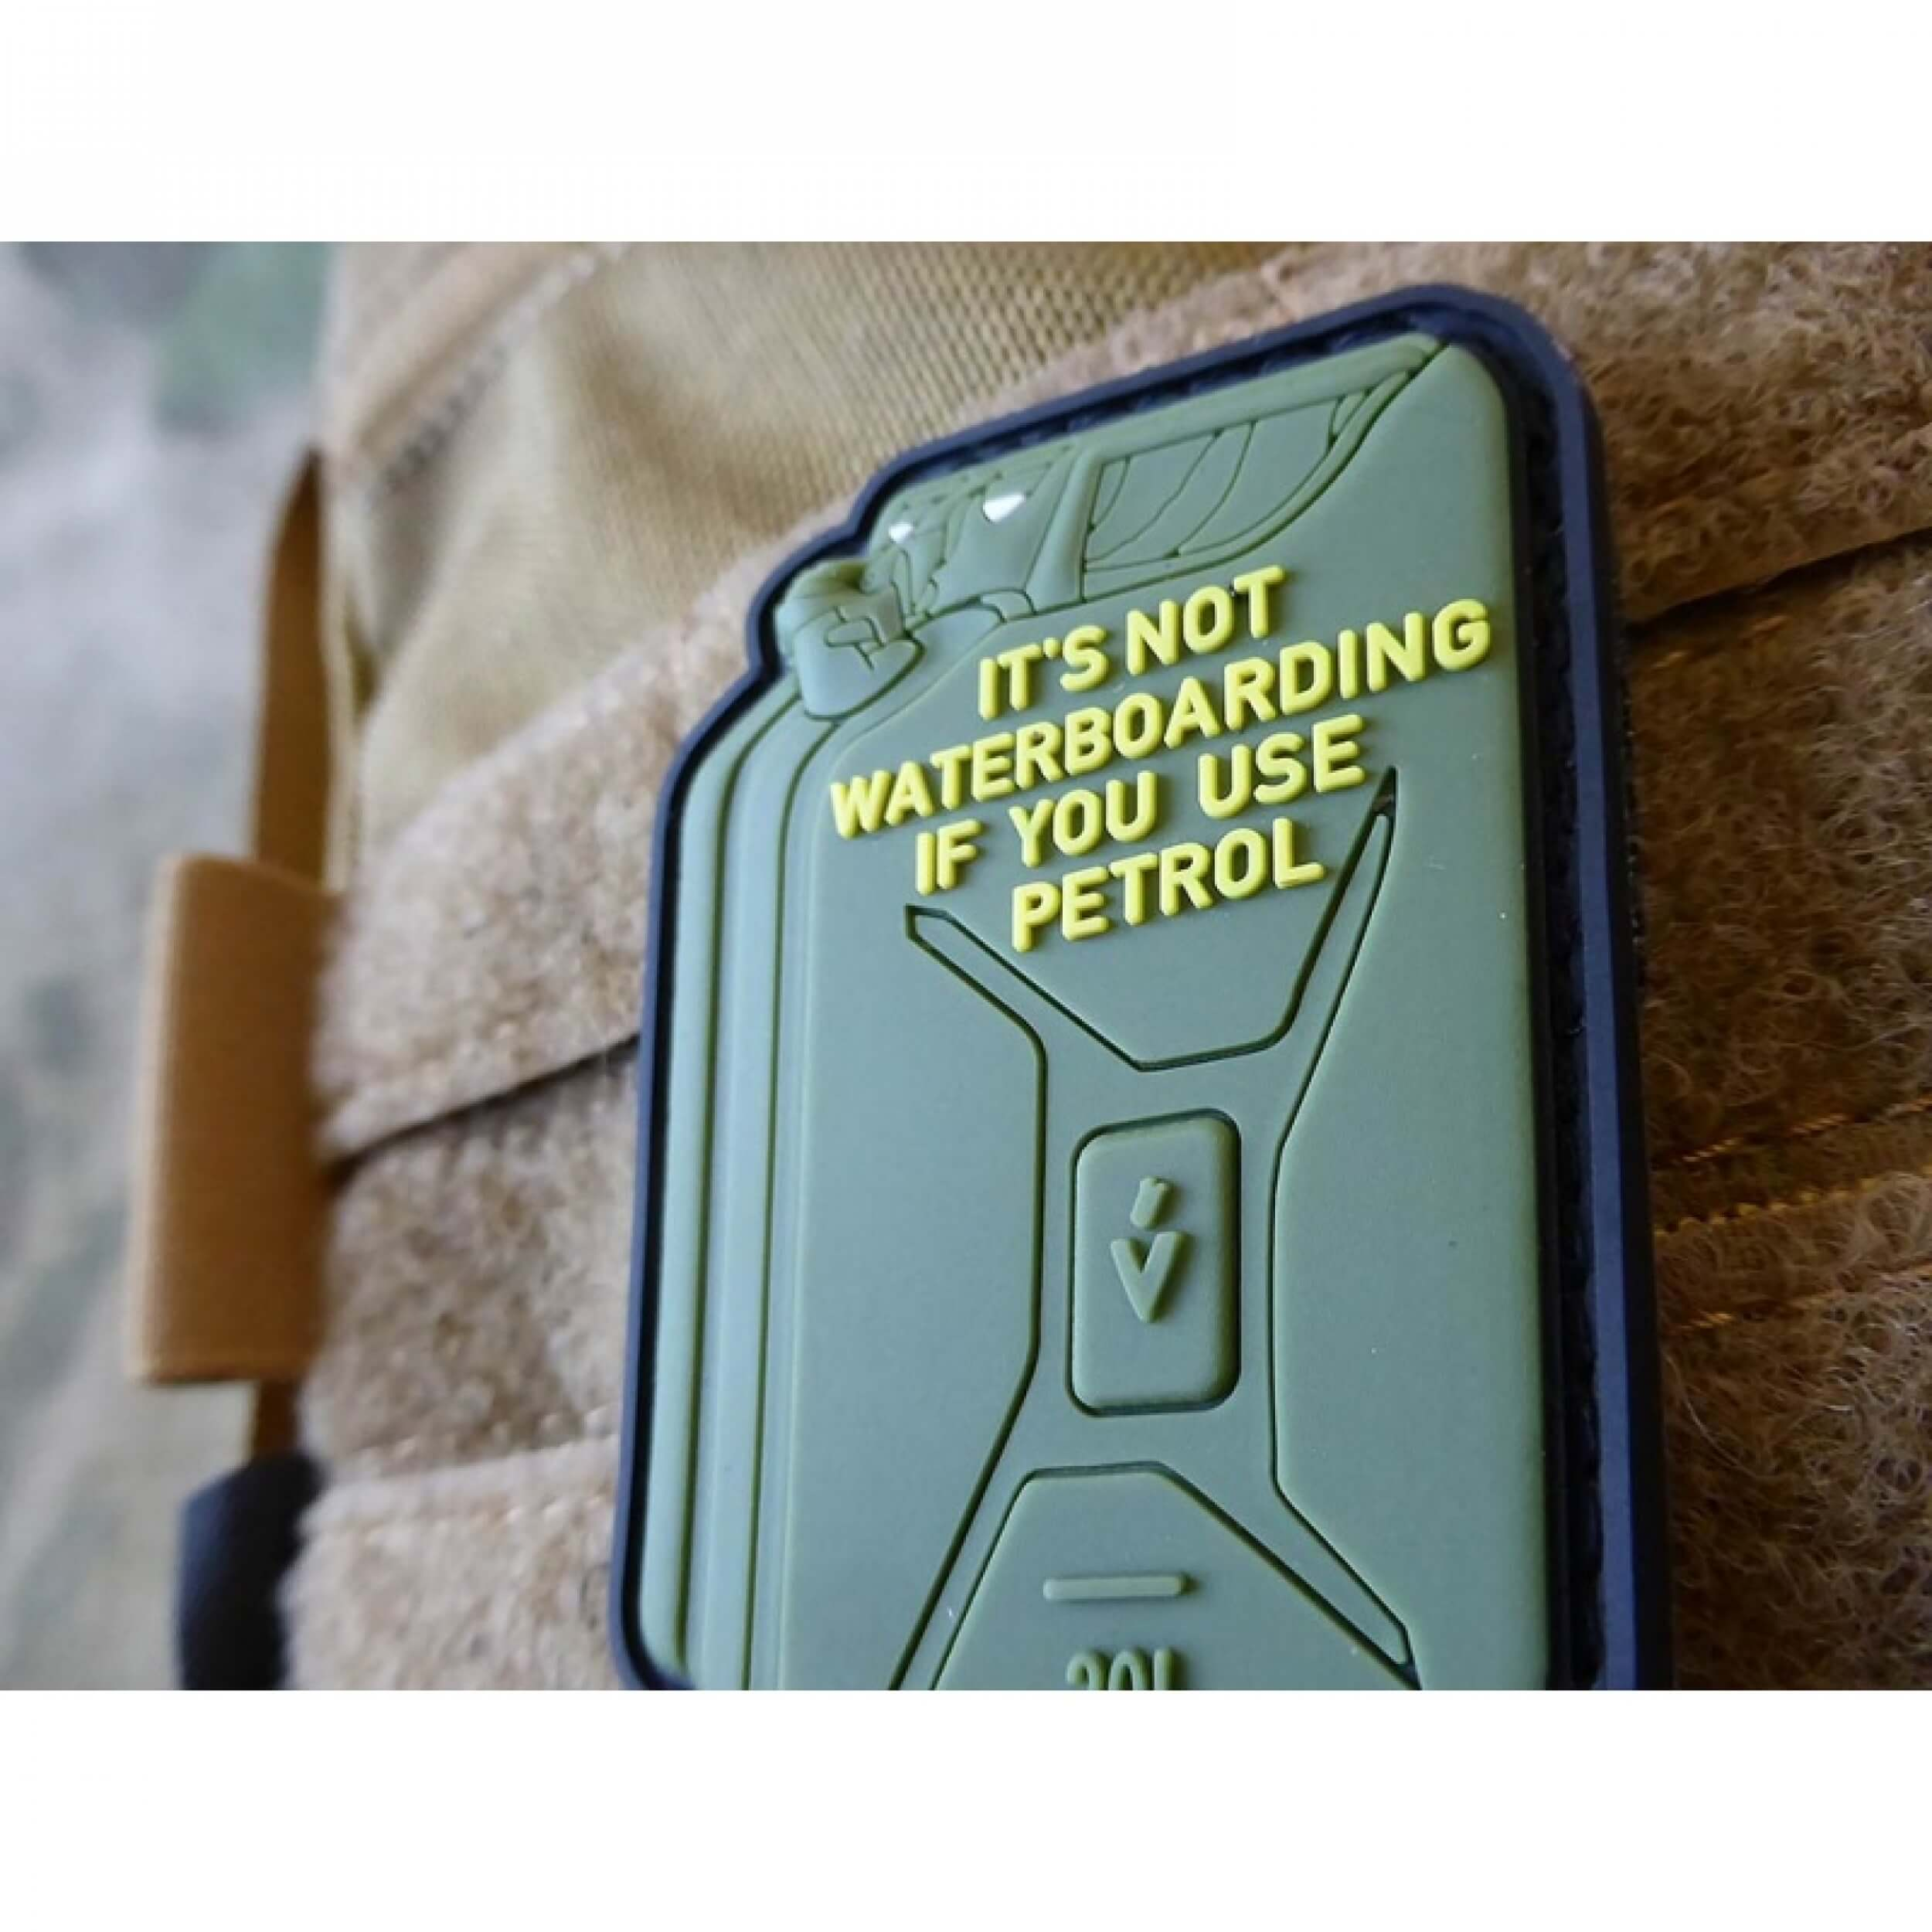 JTG Not For Everybody Petrol Waterboarding, / 3D Rubber Patch